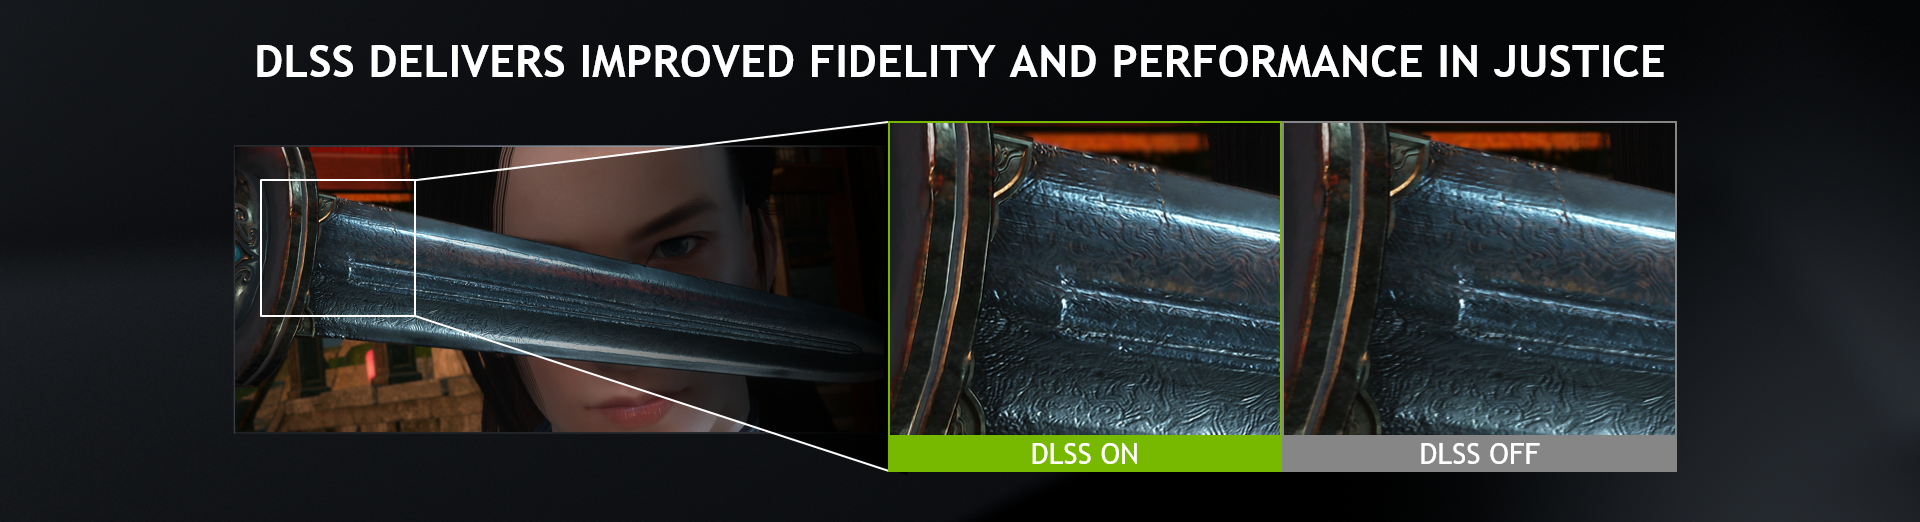 DLSS Delivers Improved Image Quality and Performance In Justice